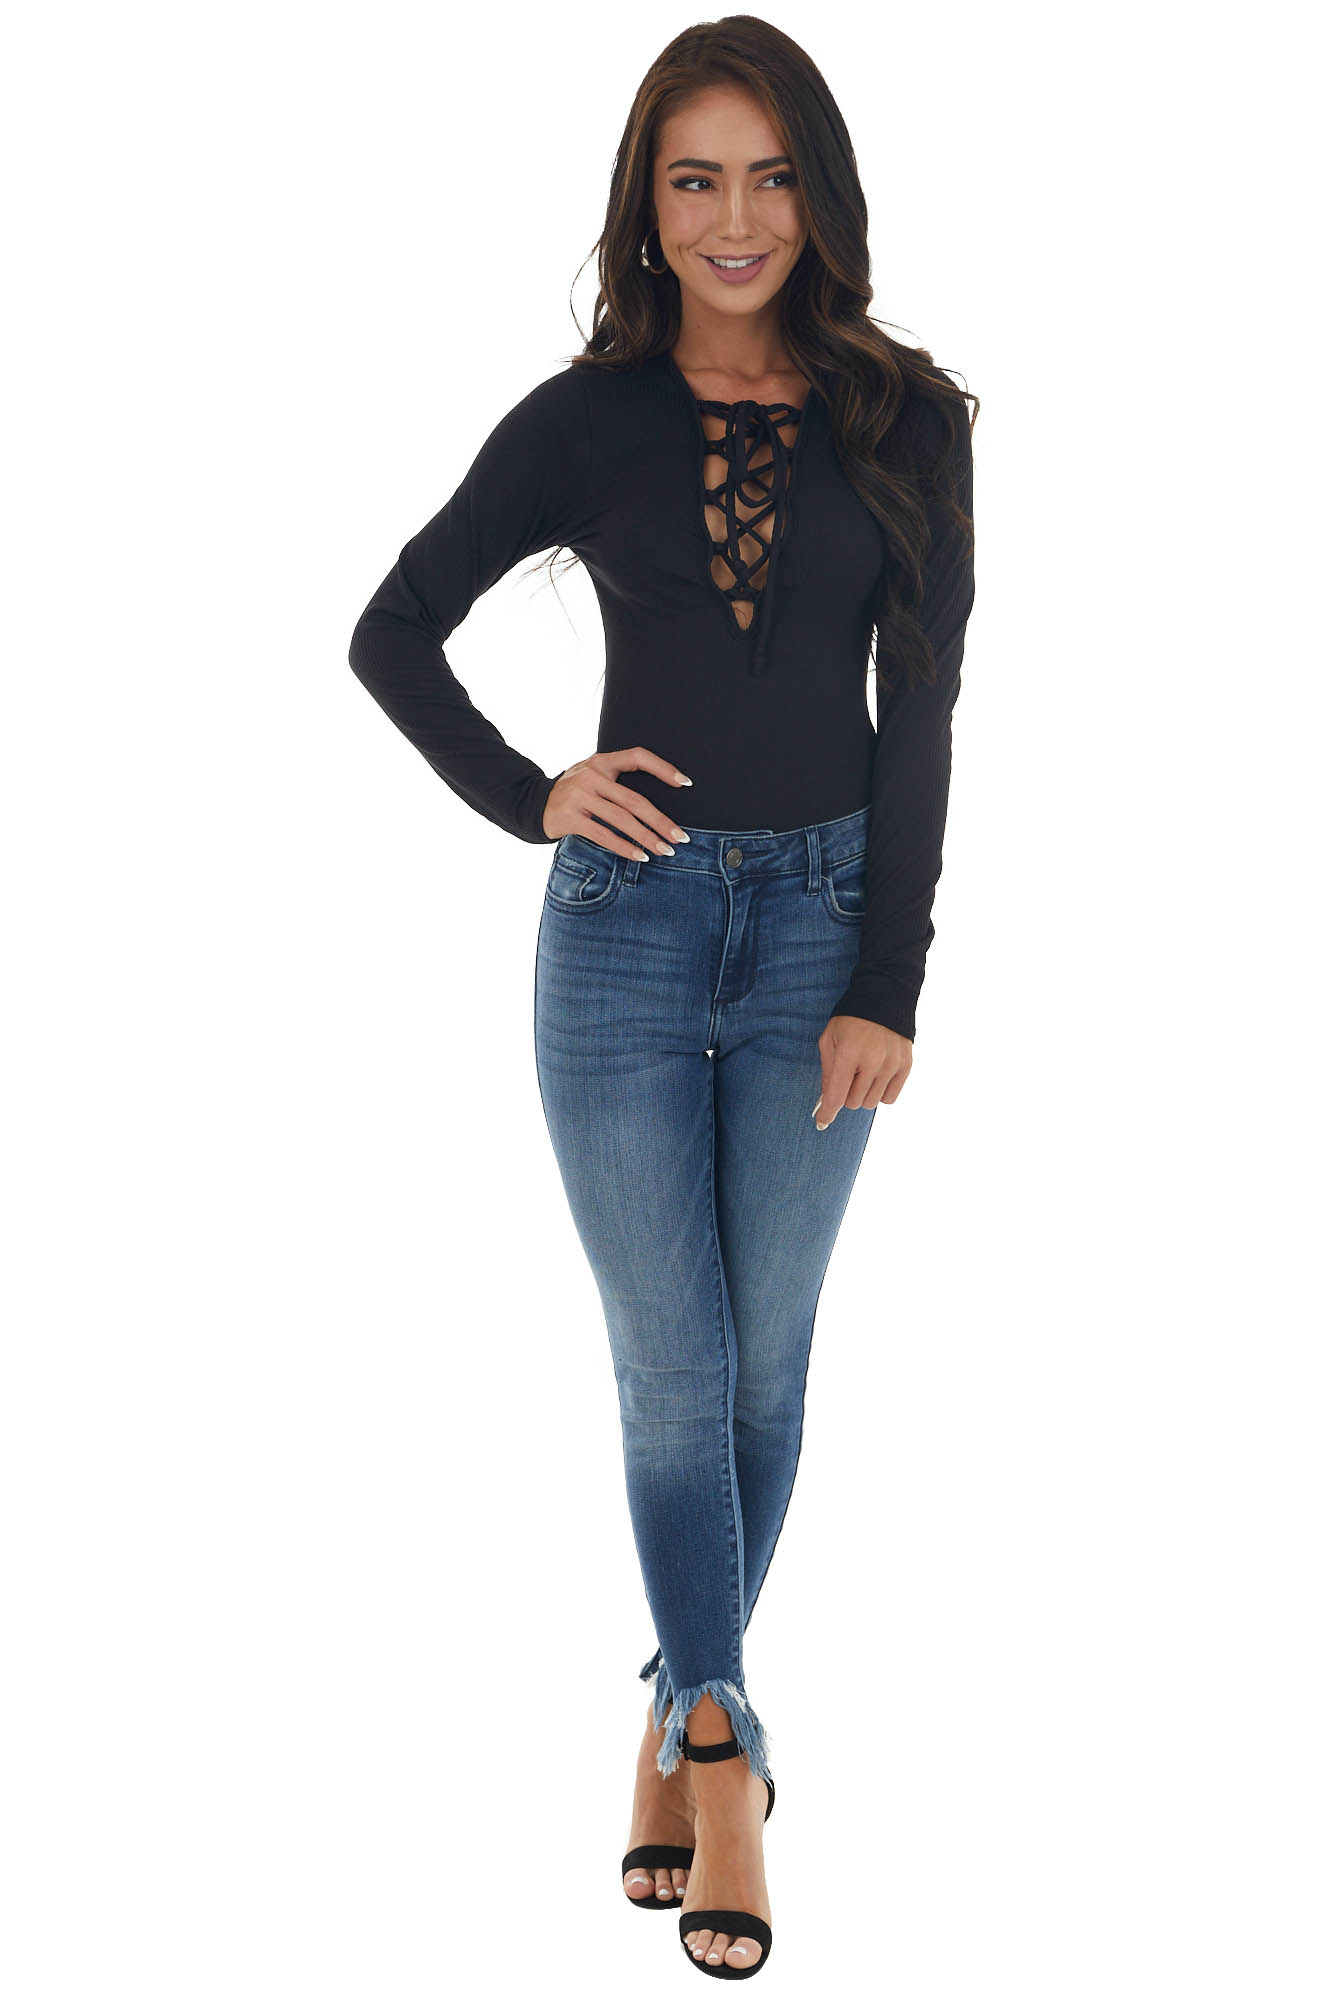 Black Ribbed Knit Bodysuit with Lace Up Front